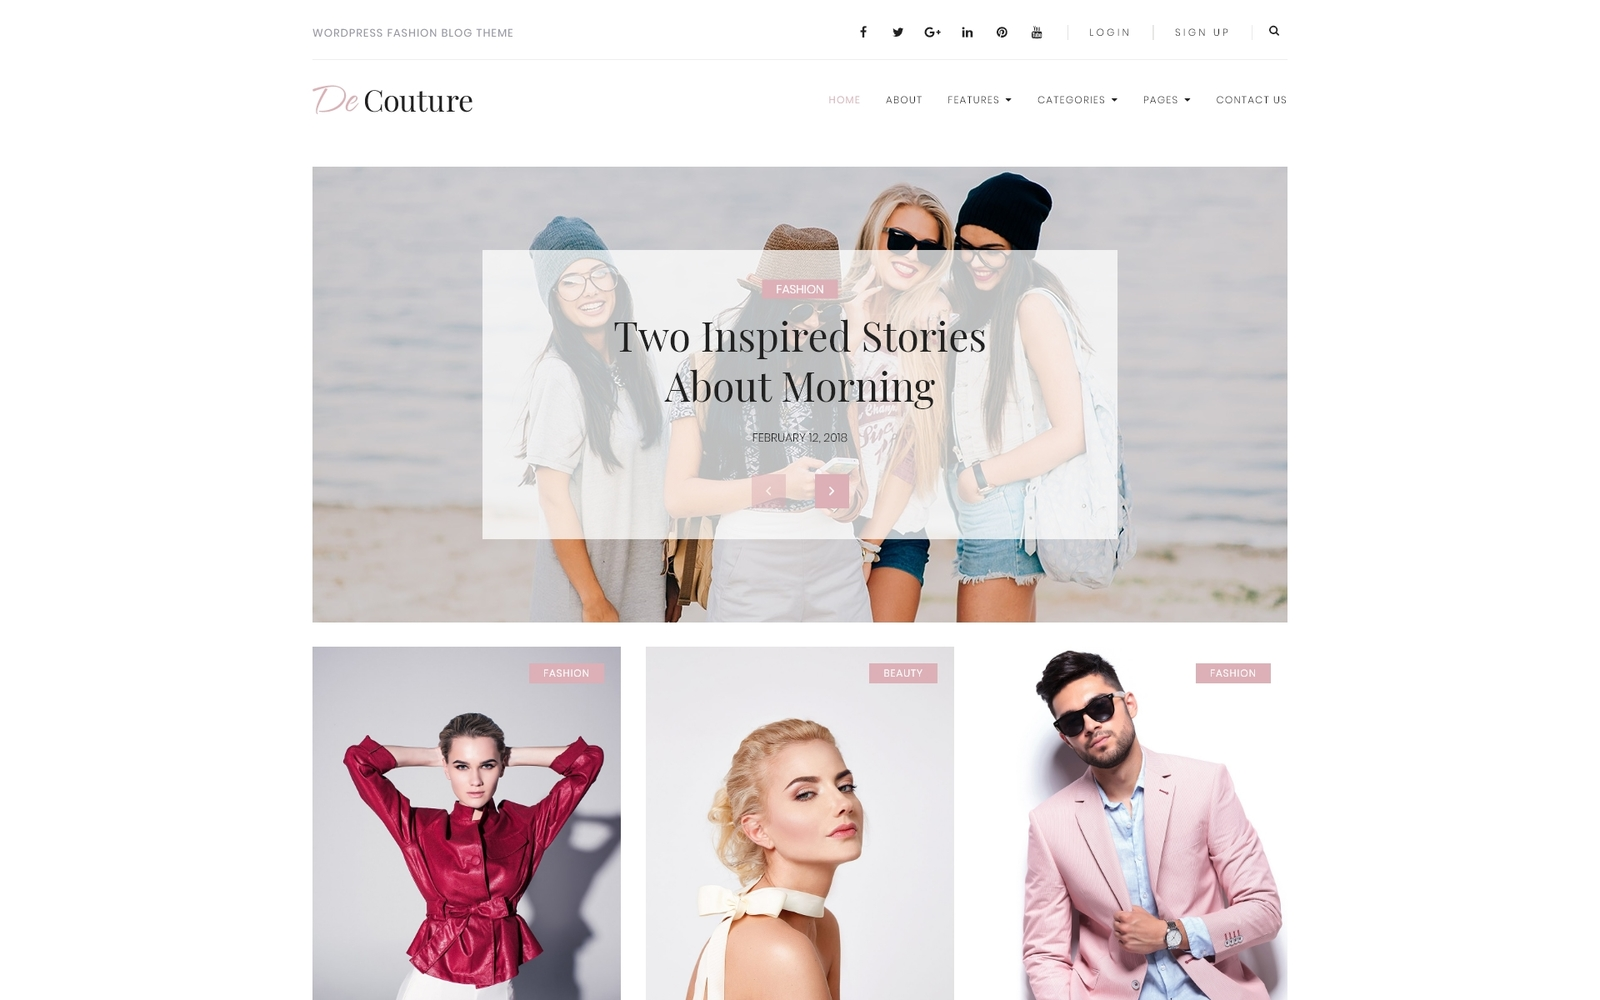 De Couture - Fancy Fashion & Beauty Blog WordPress Theme - screenshot